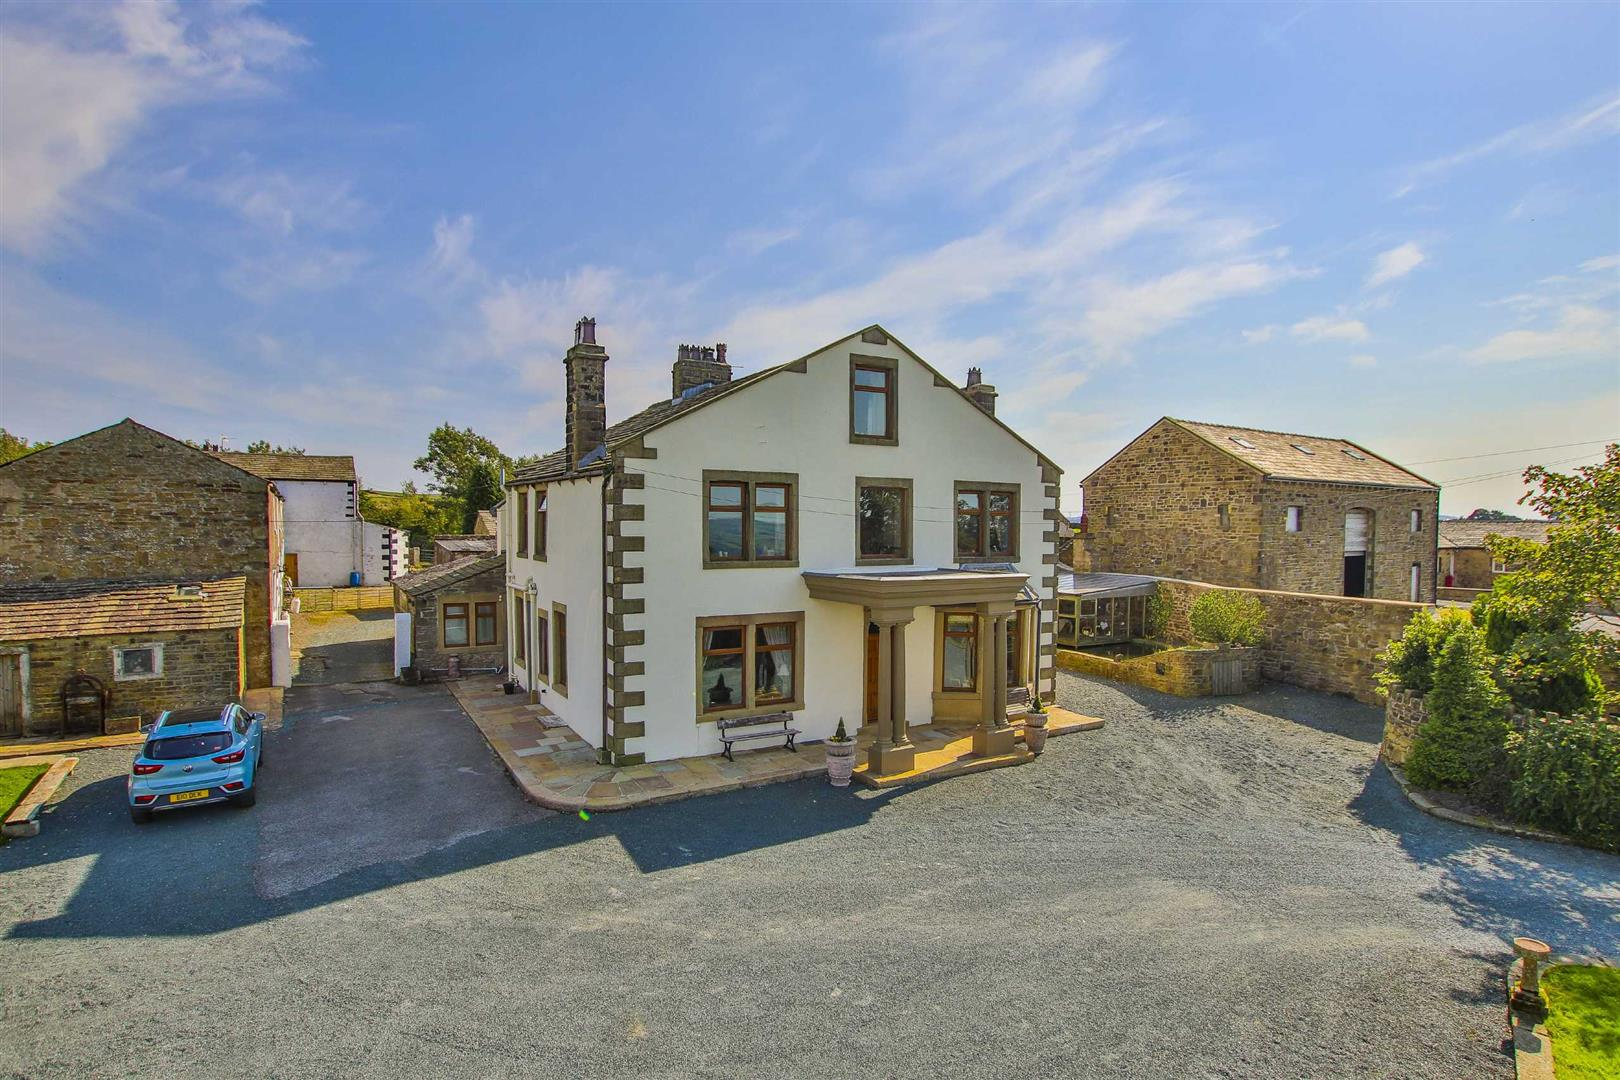 7 Bed Farmhouse For Sale - Main Image